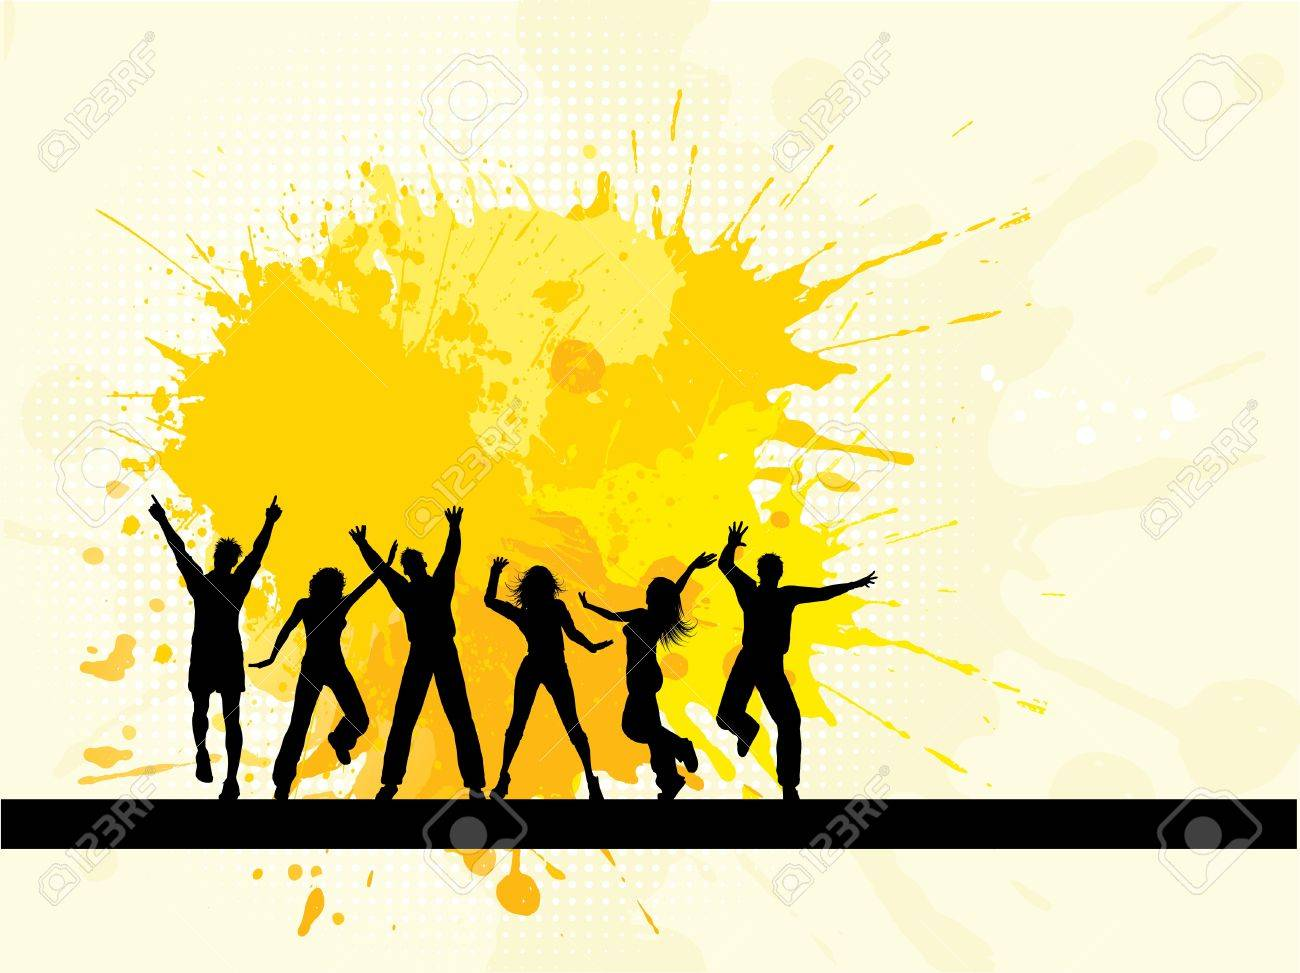 Silhouettes of people dancing on a grunge background - 8402286